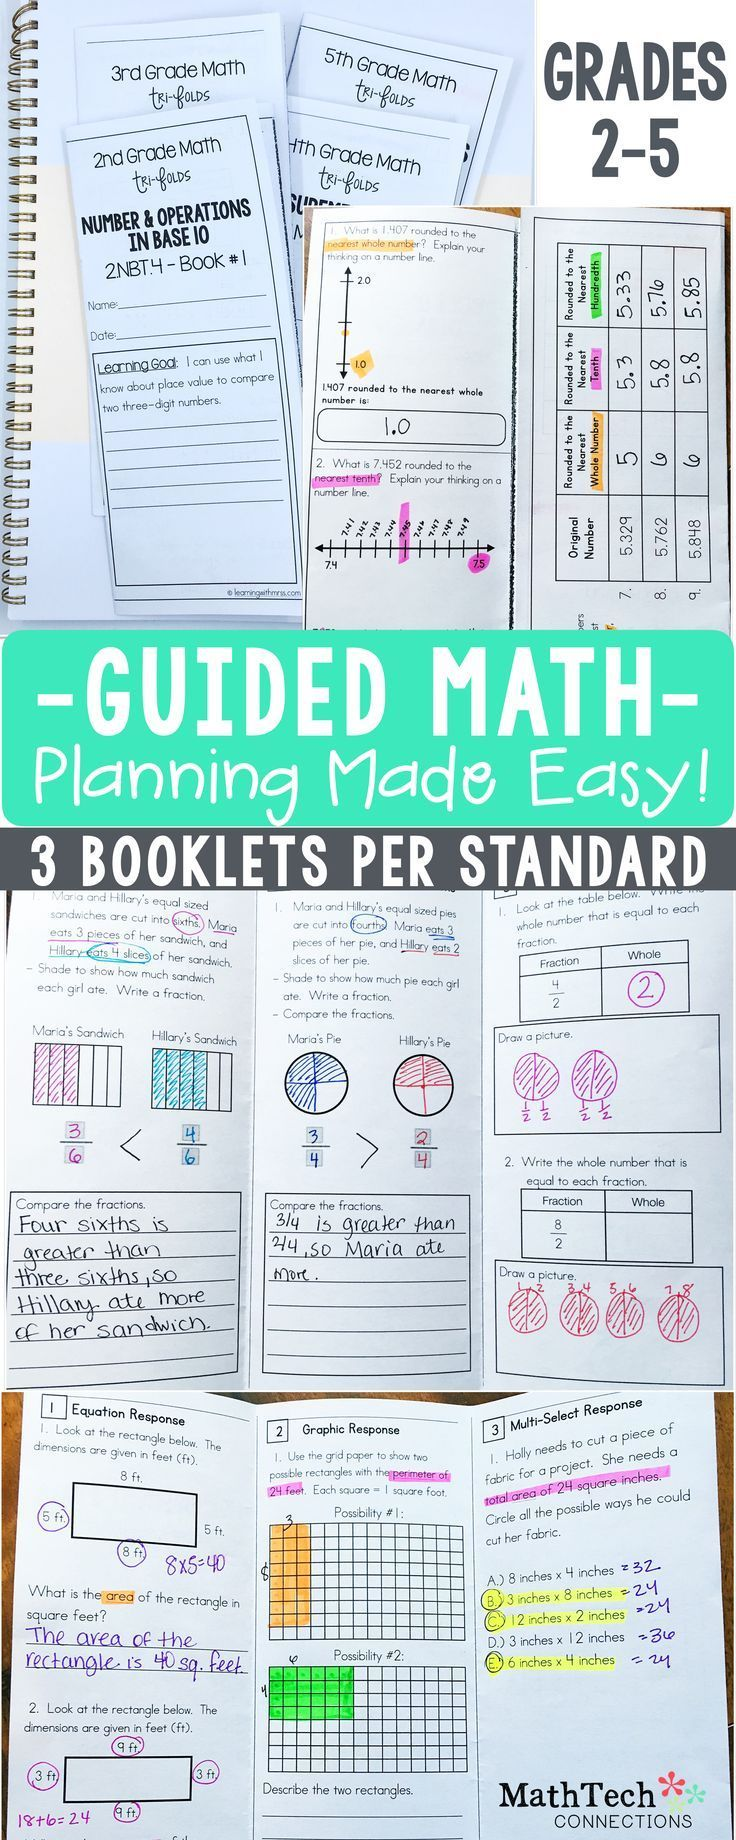 Plan your GUIDED MATH Small Groups with these common core aligned tri-folds. 3 booklets per standard give your plenty of material to review and assess. Math BUNDLES for Grades 2-5 are available!